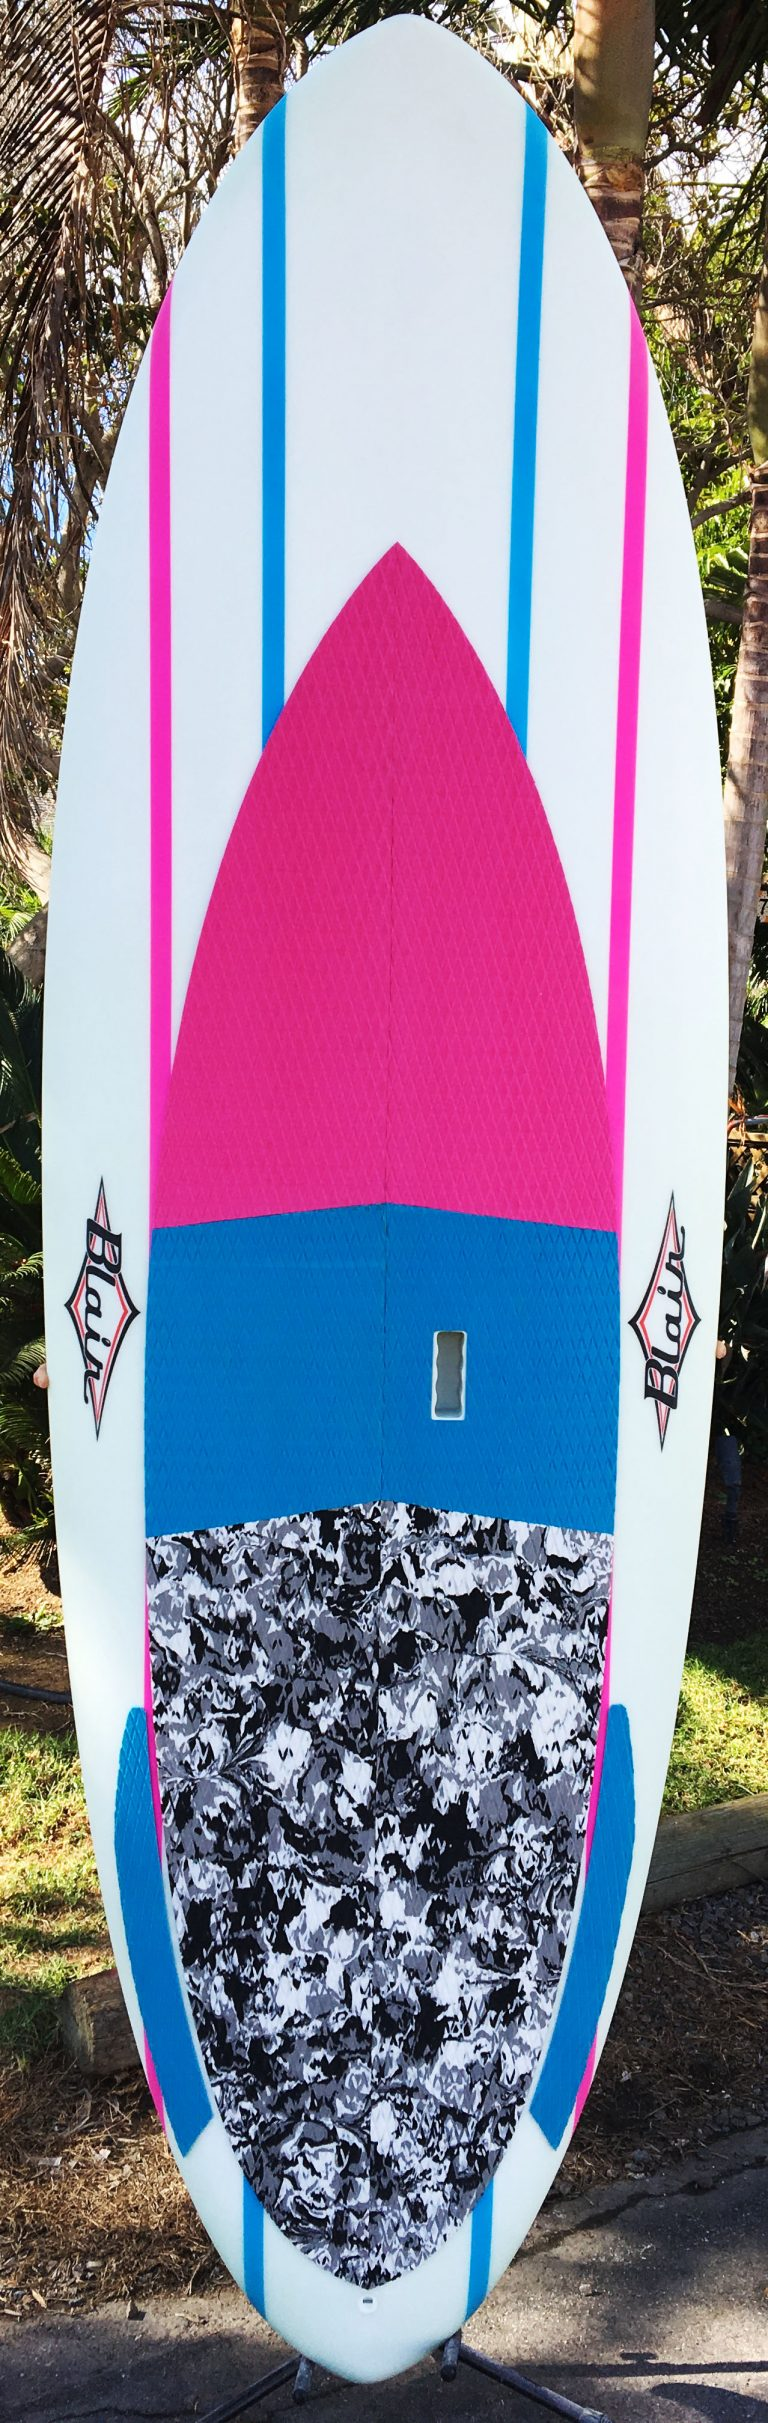 Joe Blair Stand Up Paddle Board 10'1 Front